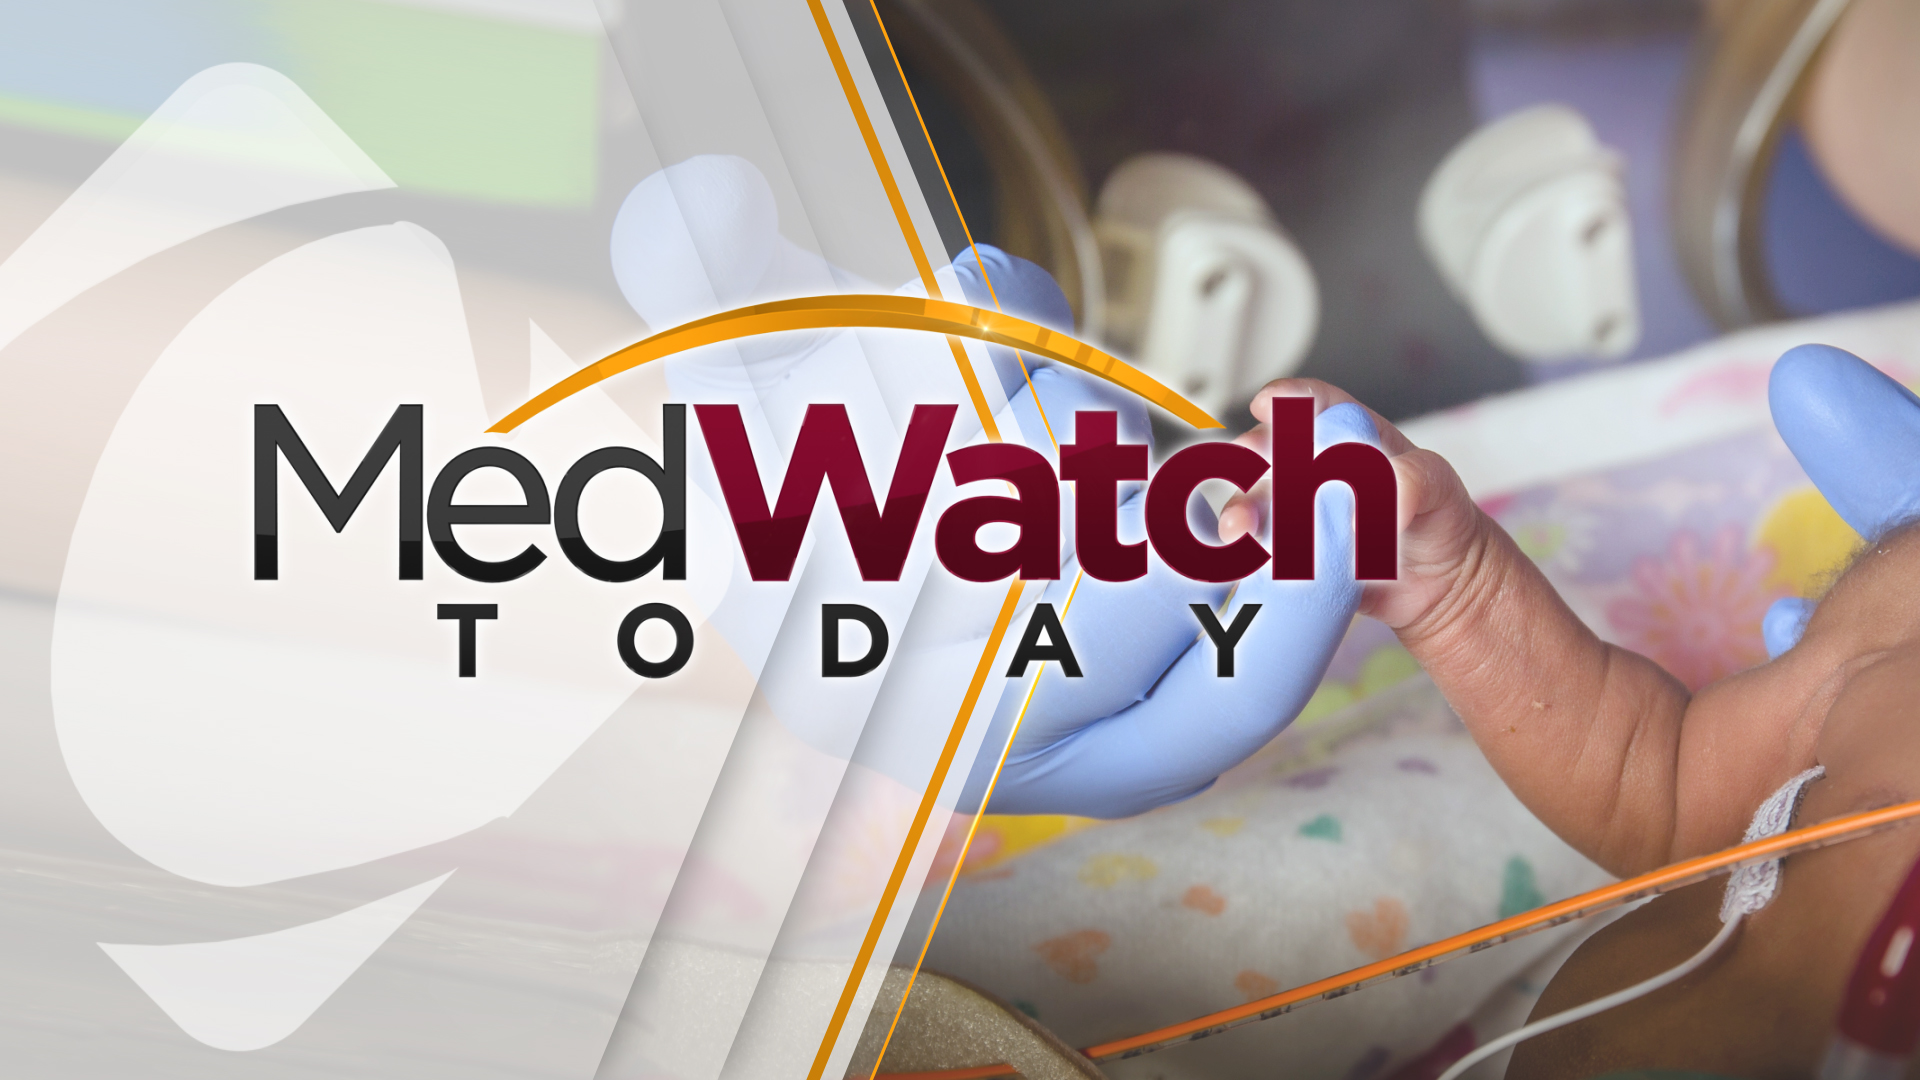 medwatch-today_1521673717616.jpg